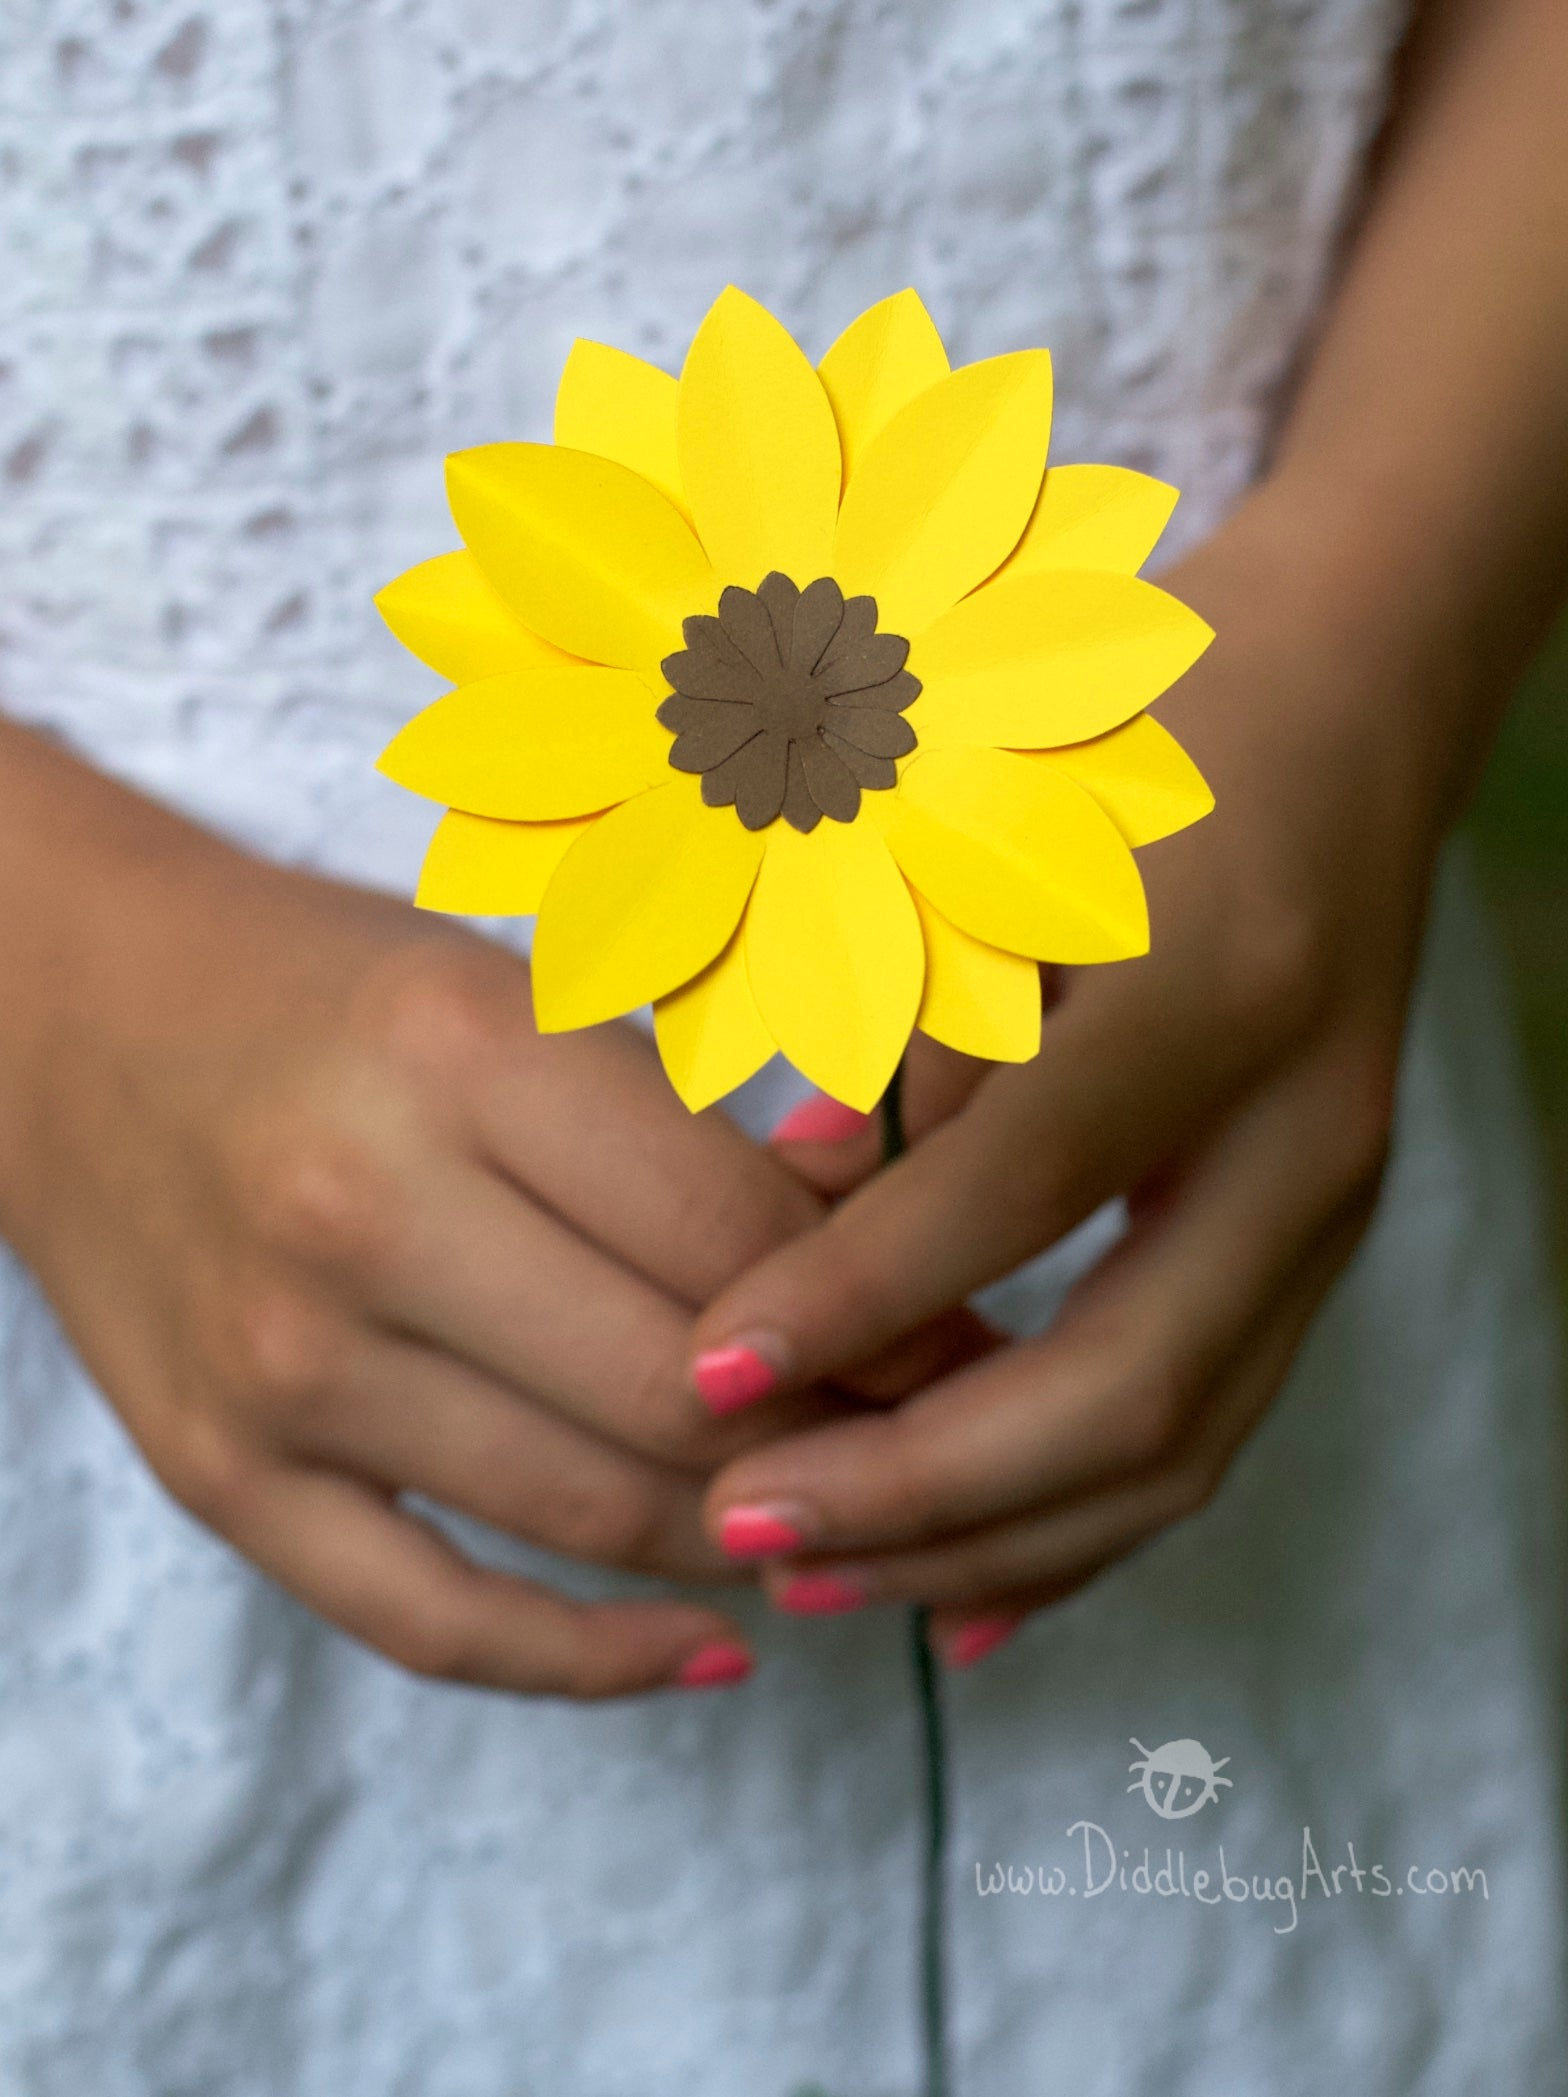 single paper yellow black-eyed susan daisy flower being held by a young girl